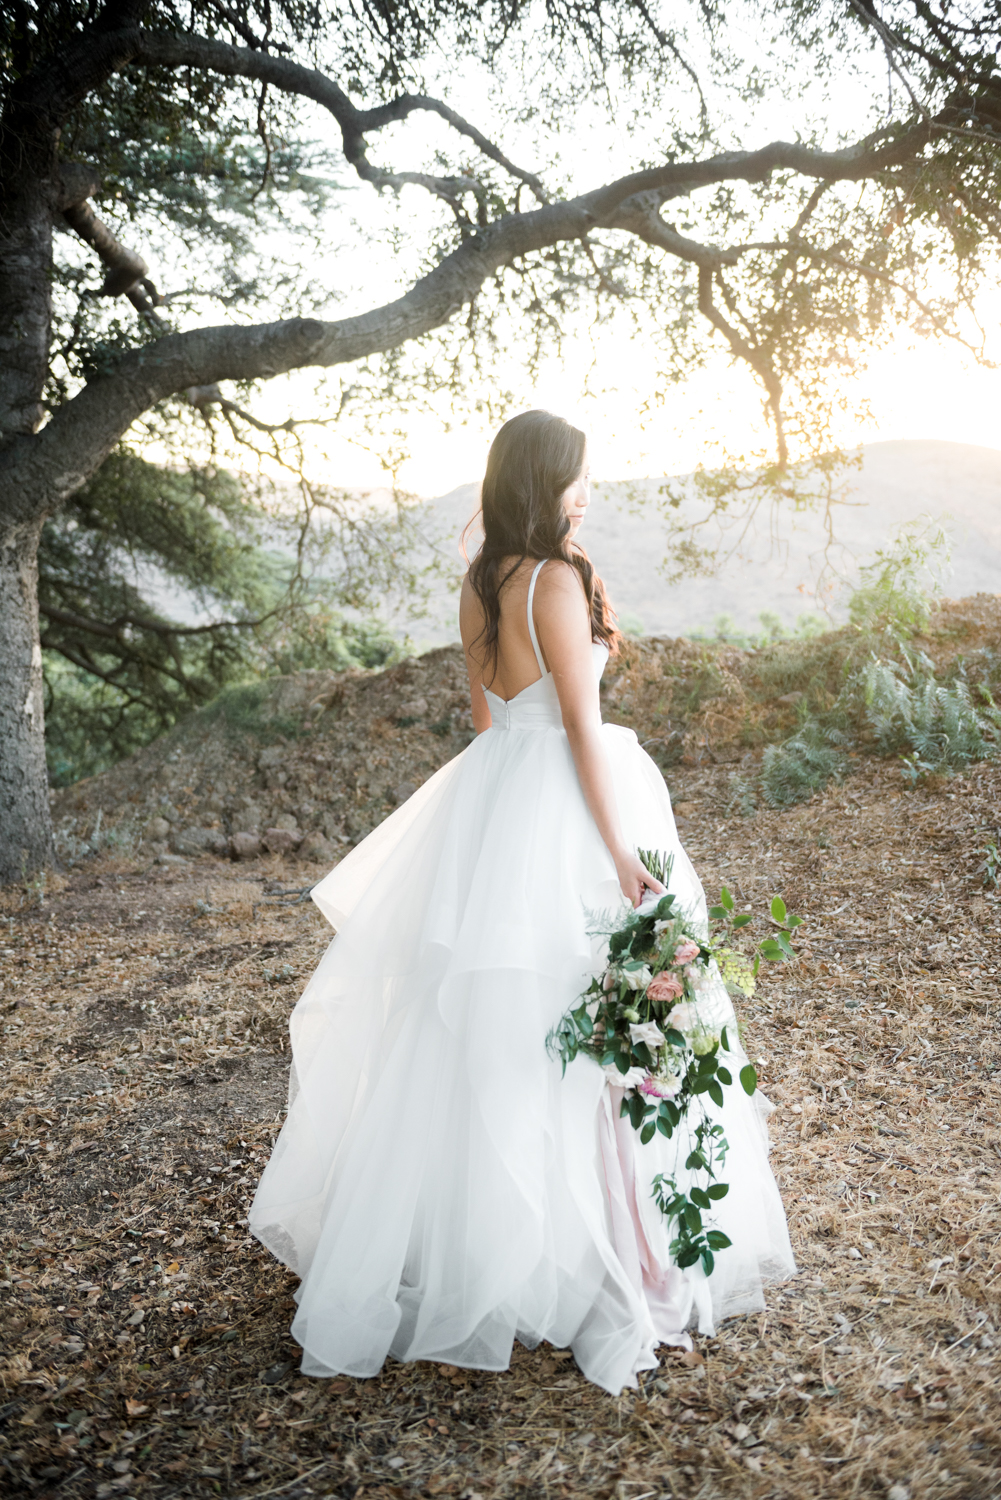 Magical Whimsical Pink Simi Valley California Wedding – Jennifer Lourie Photography 31